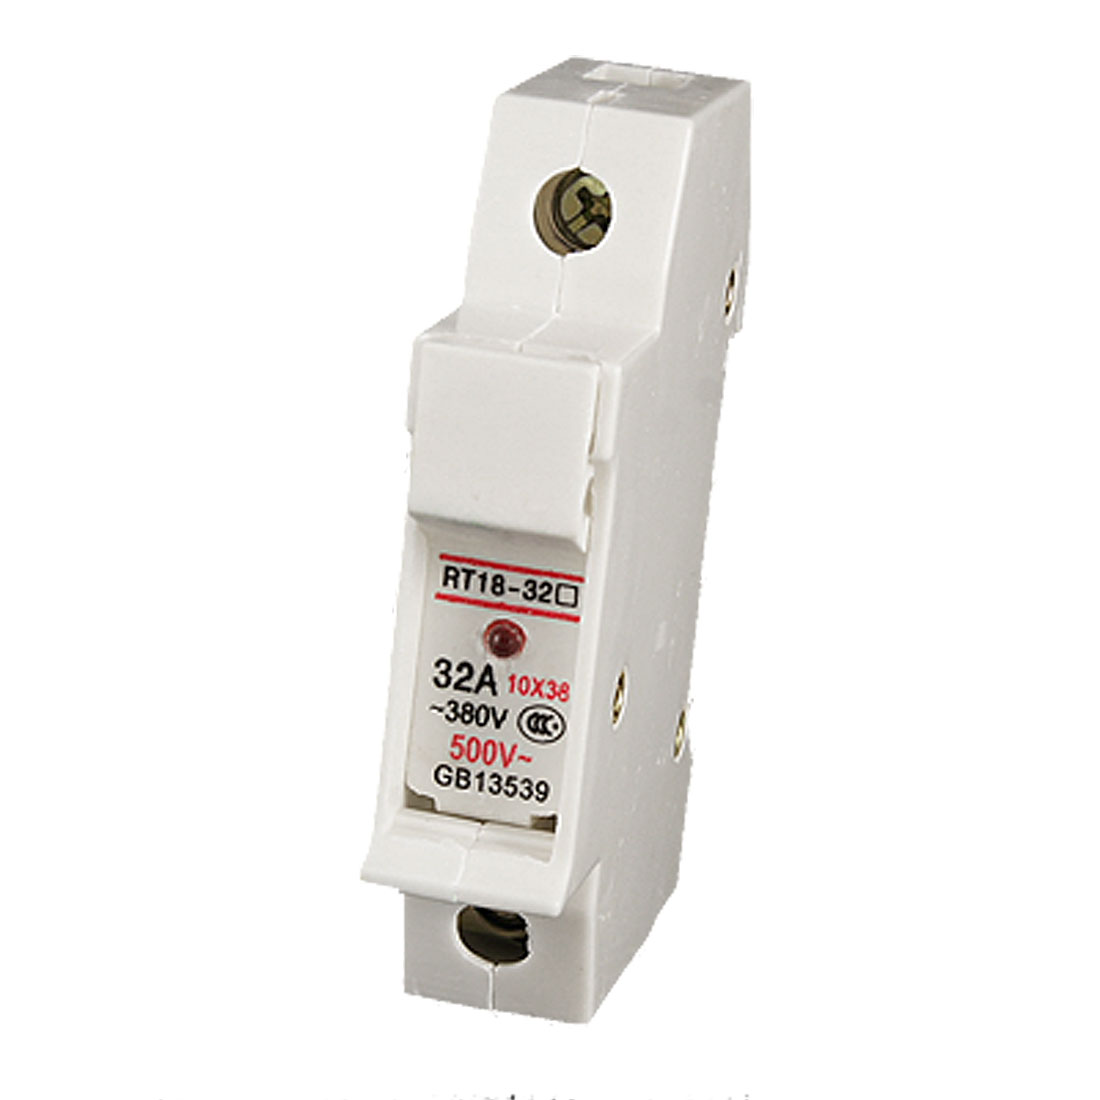 RT18-32A AC 380V 32A 10x38mm 1P Cylindrical Fuse Holder with LED